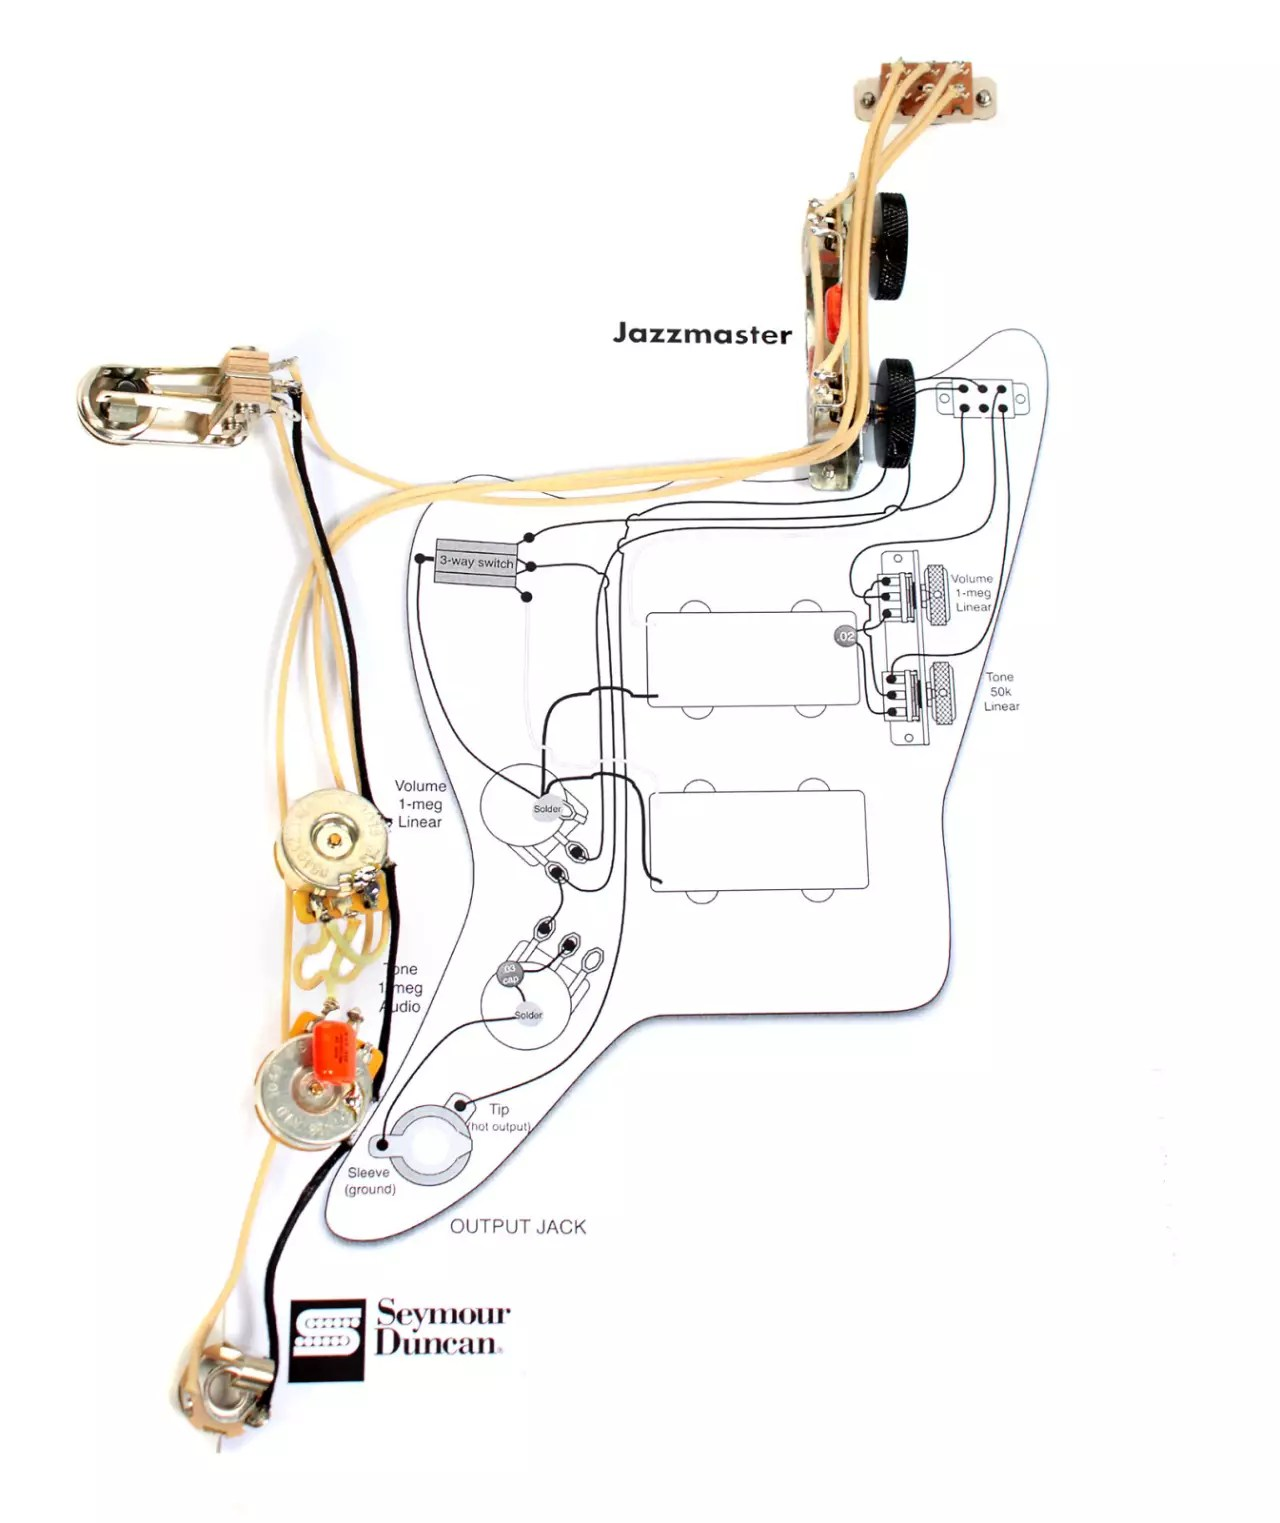 fender squier jaguar wiring diagram single phase capacitor start induction motor connection vintage traditional jazzmaster guitar pre wired